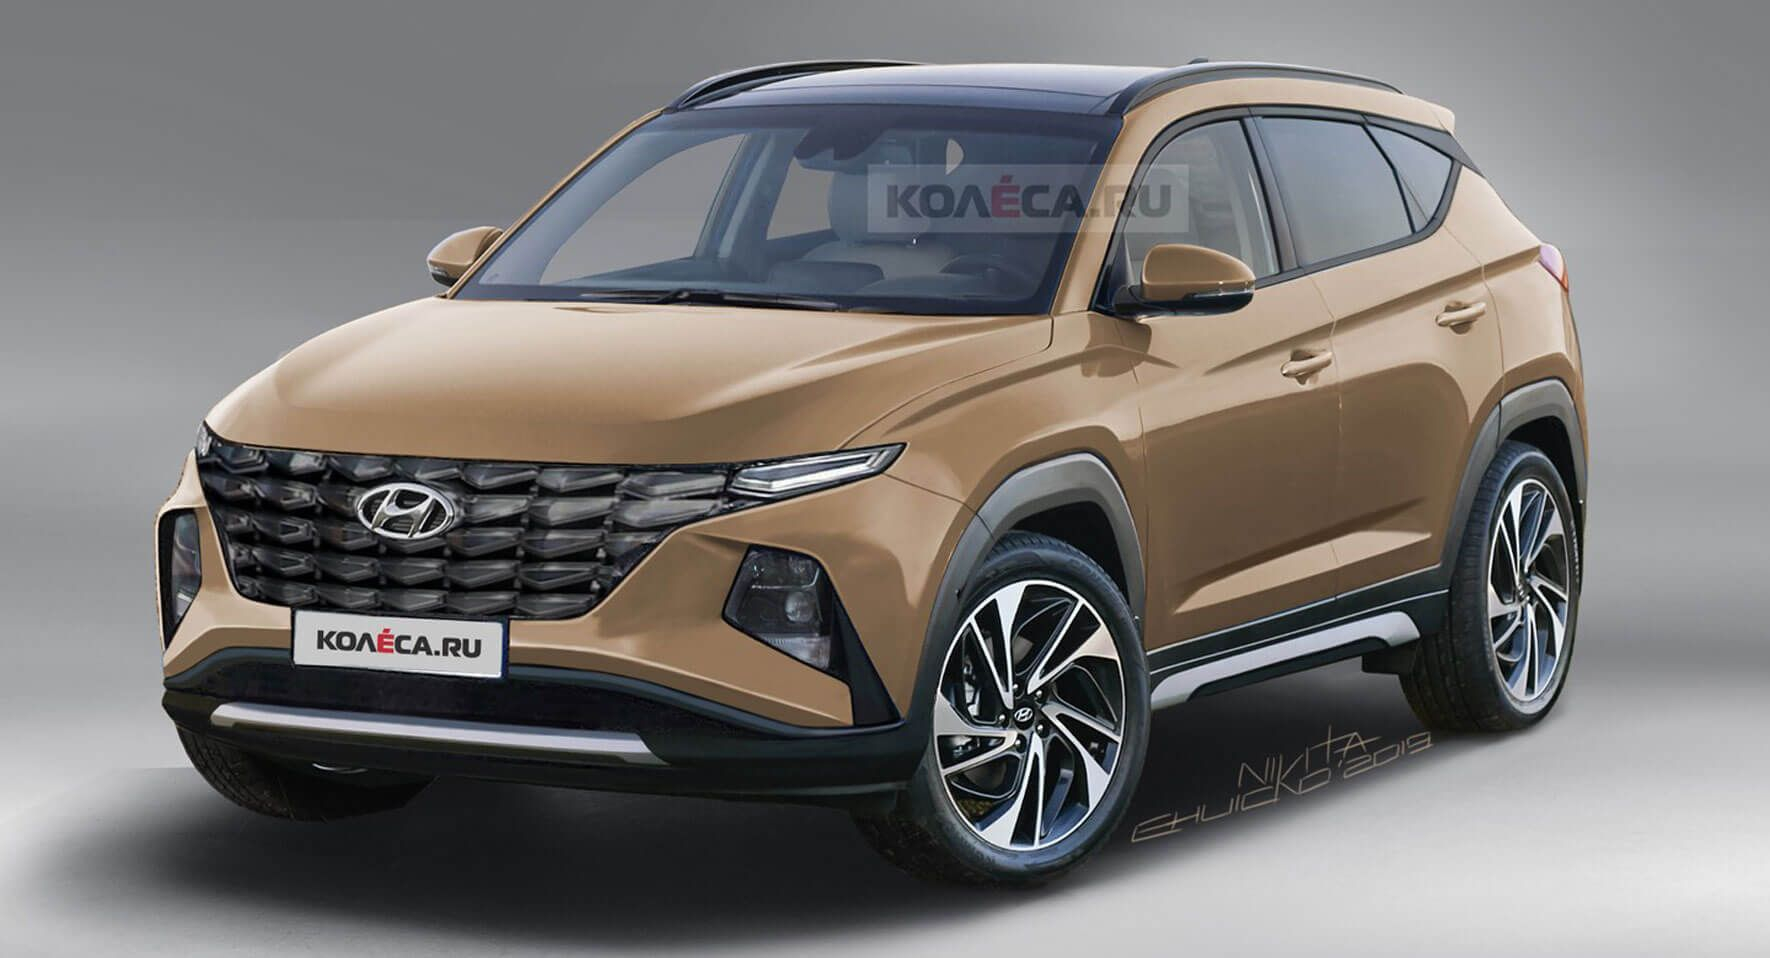 2021 Hyundai Tucson: Here's A More Refined And Accurate Take